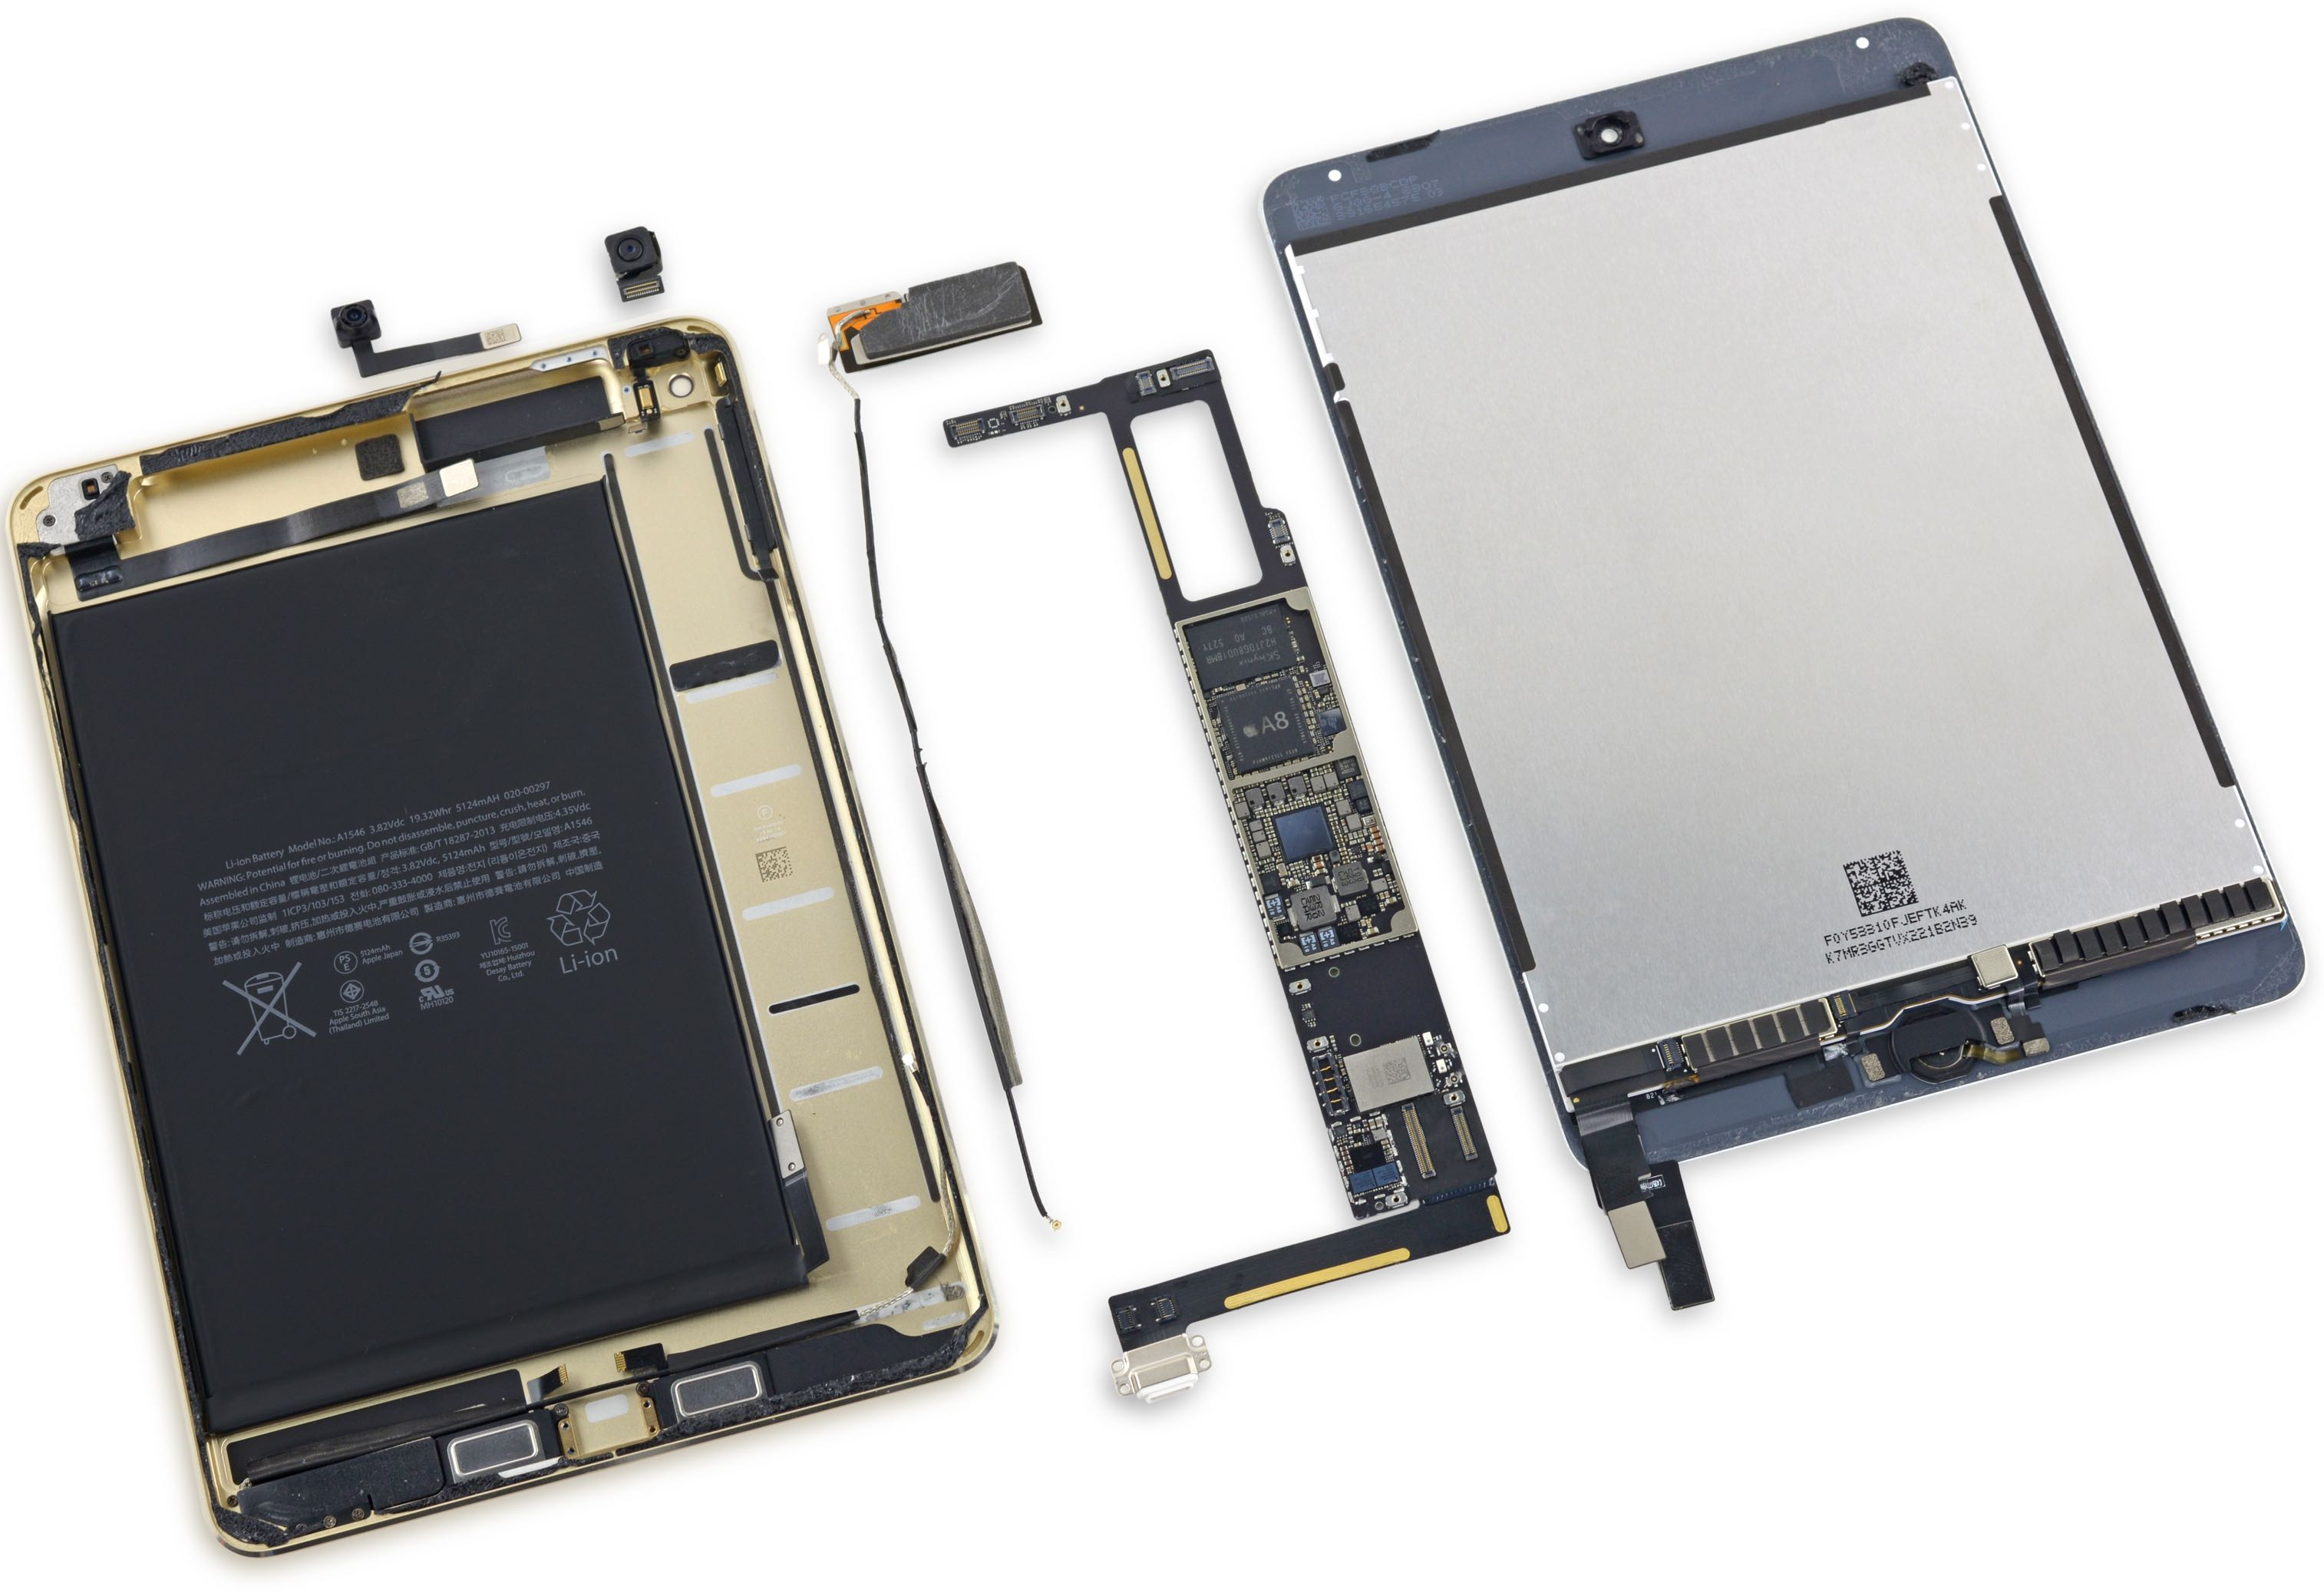 iPad mini 4 teardown iFixit image 003